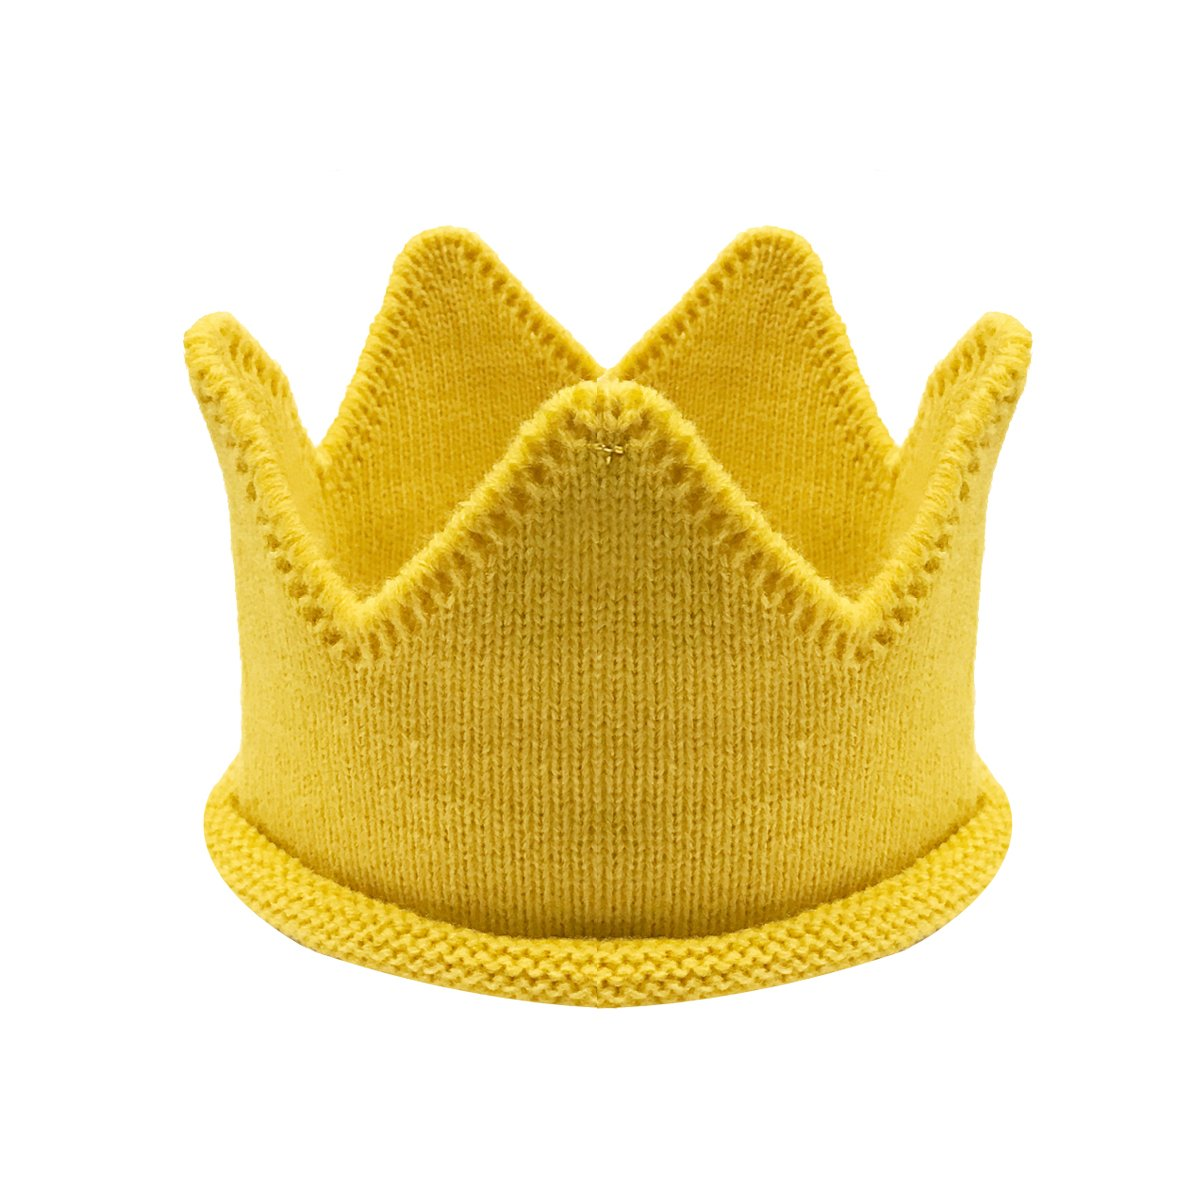 Wrapables Baby Boy & Girl Birthday Party Knitted Crown Headband Beanie Cap Hat, Yellow by Wrapables